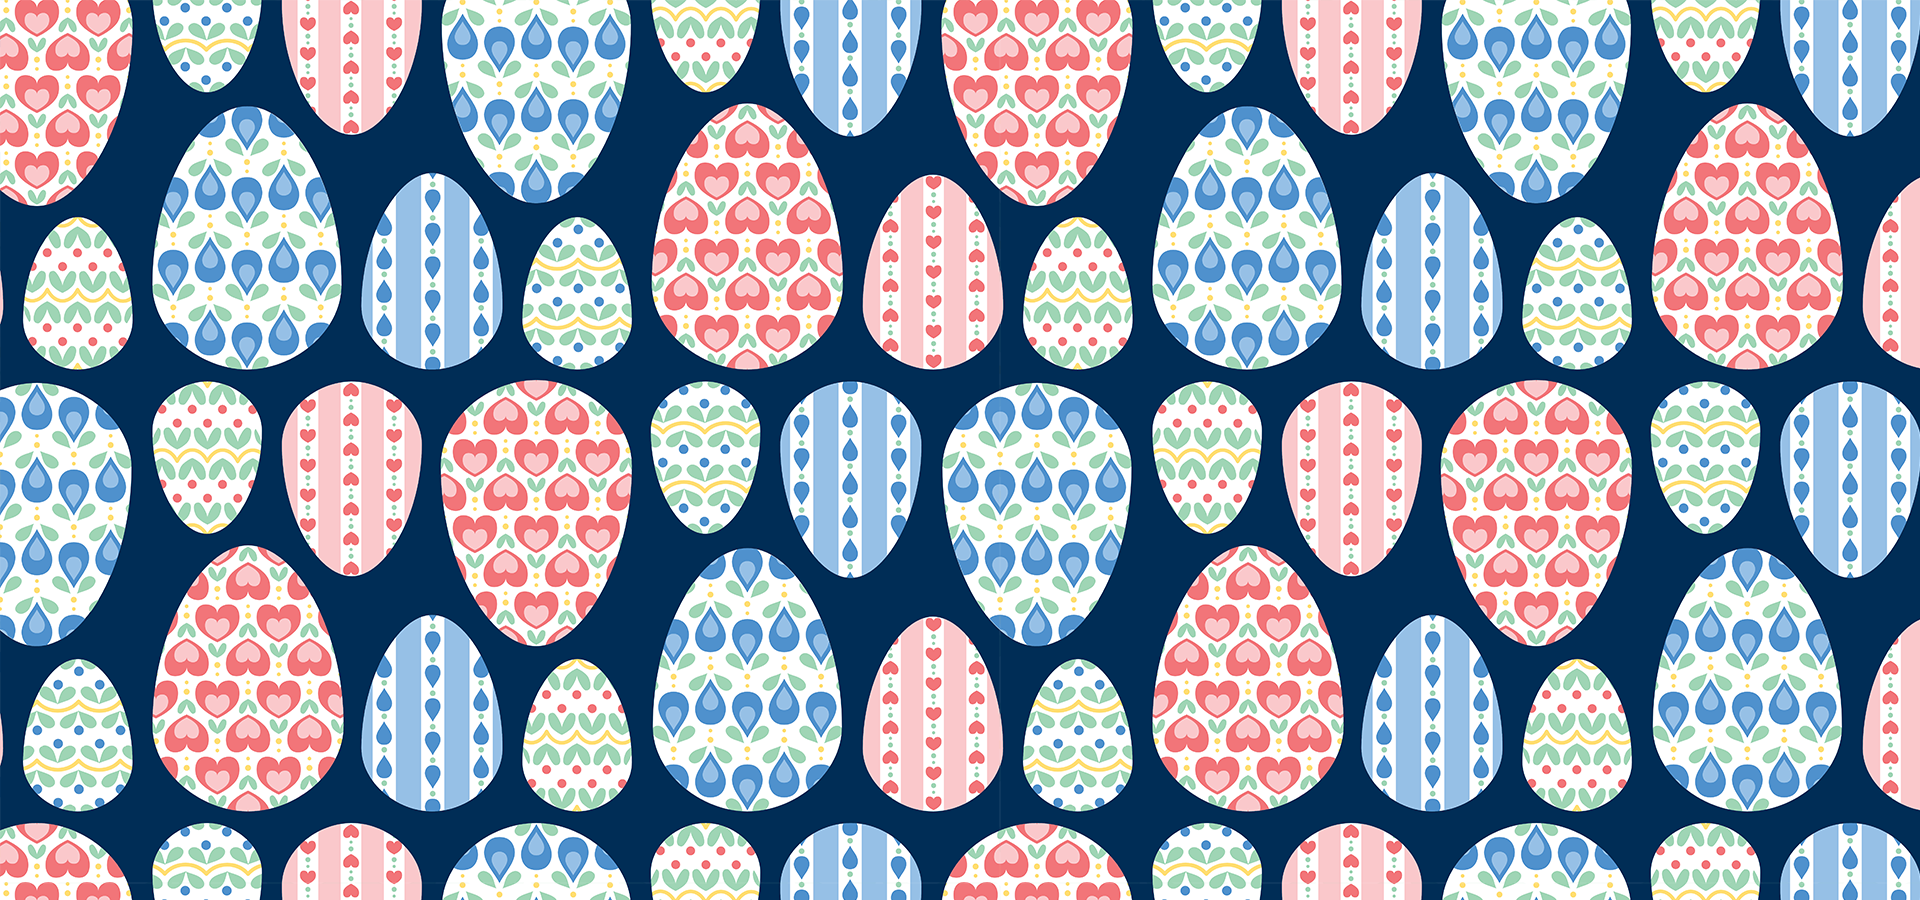 painted eggs pattern